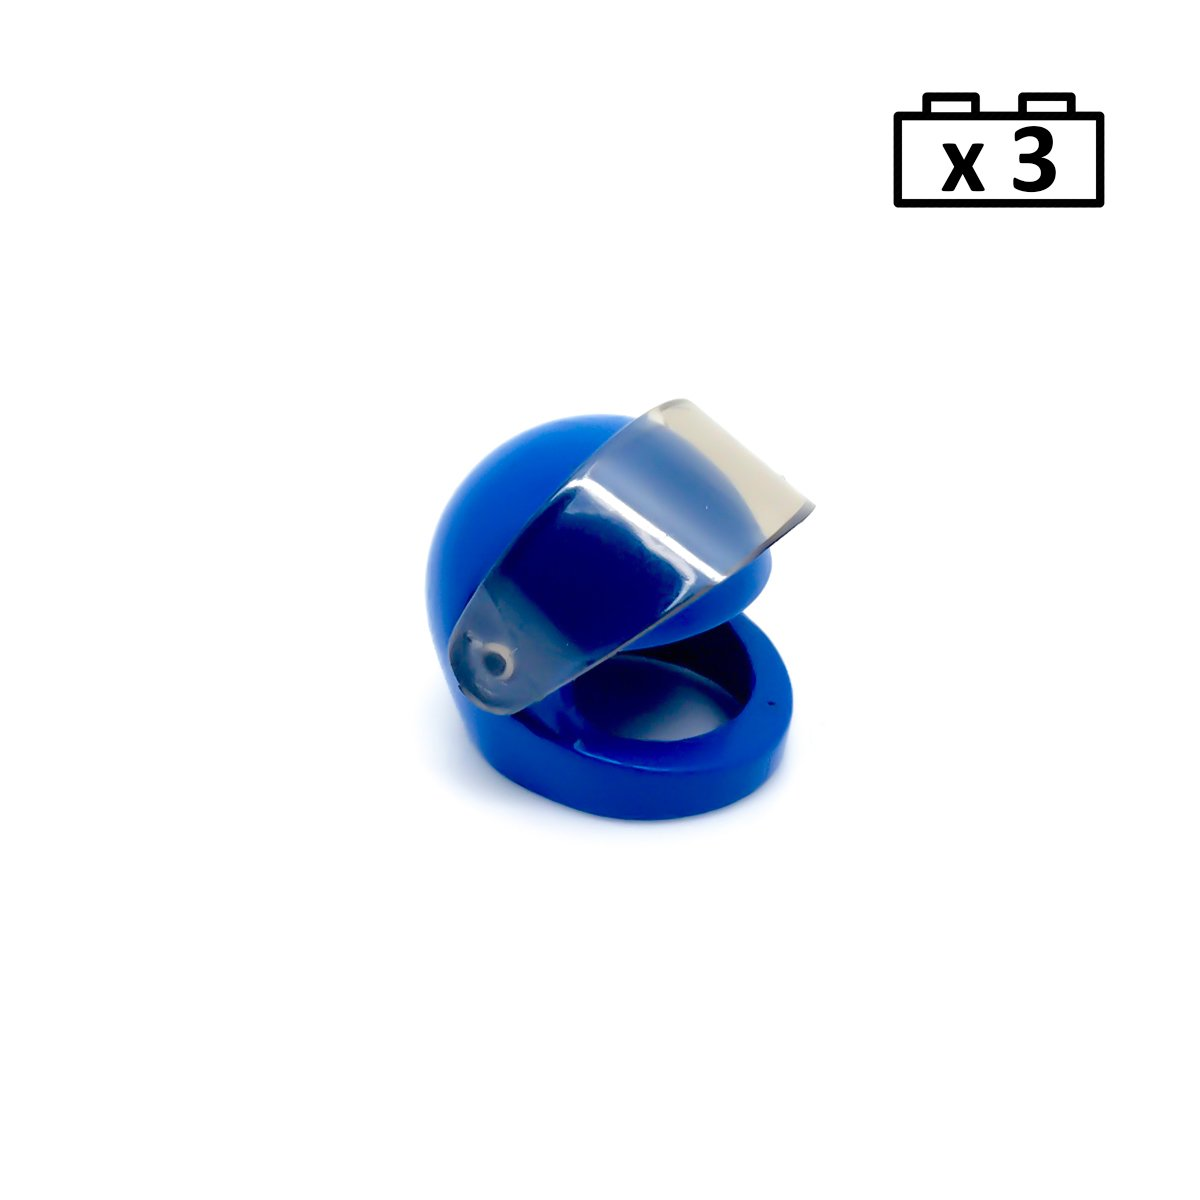 Also fits Lynskey and other road bikes Noah And Theo NT-HD026 Mech Gear Derailleur Hanger Dropout compatible with Cube #123 or 10123 in SATIN BLUE incl screw set